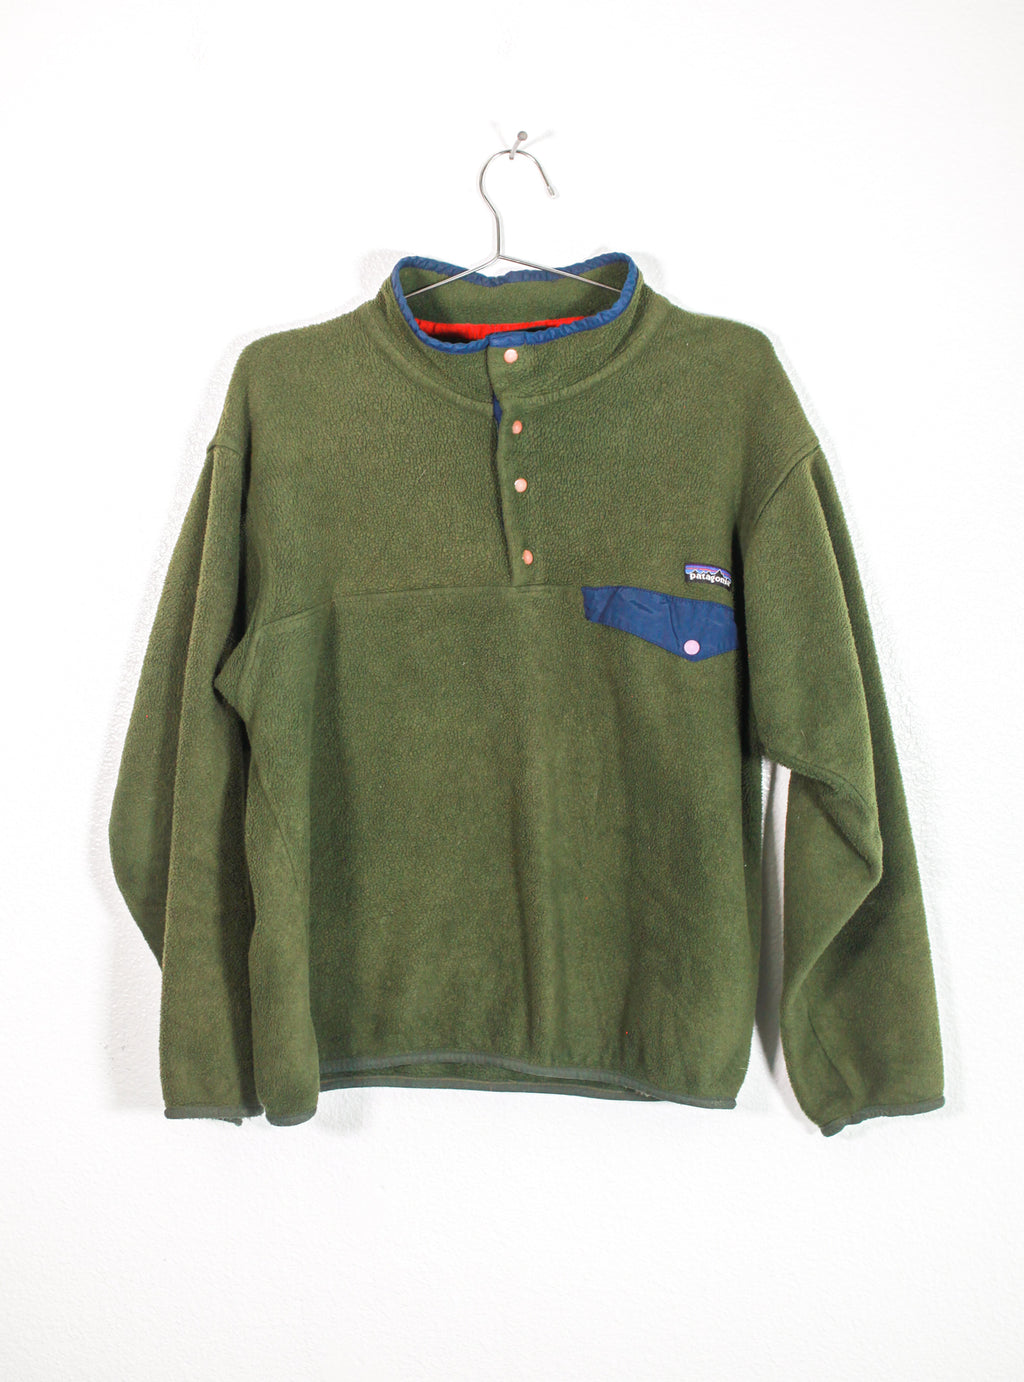 Vintage Olive Patagonia Fleece Pull Over